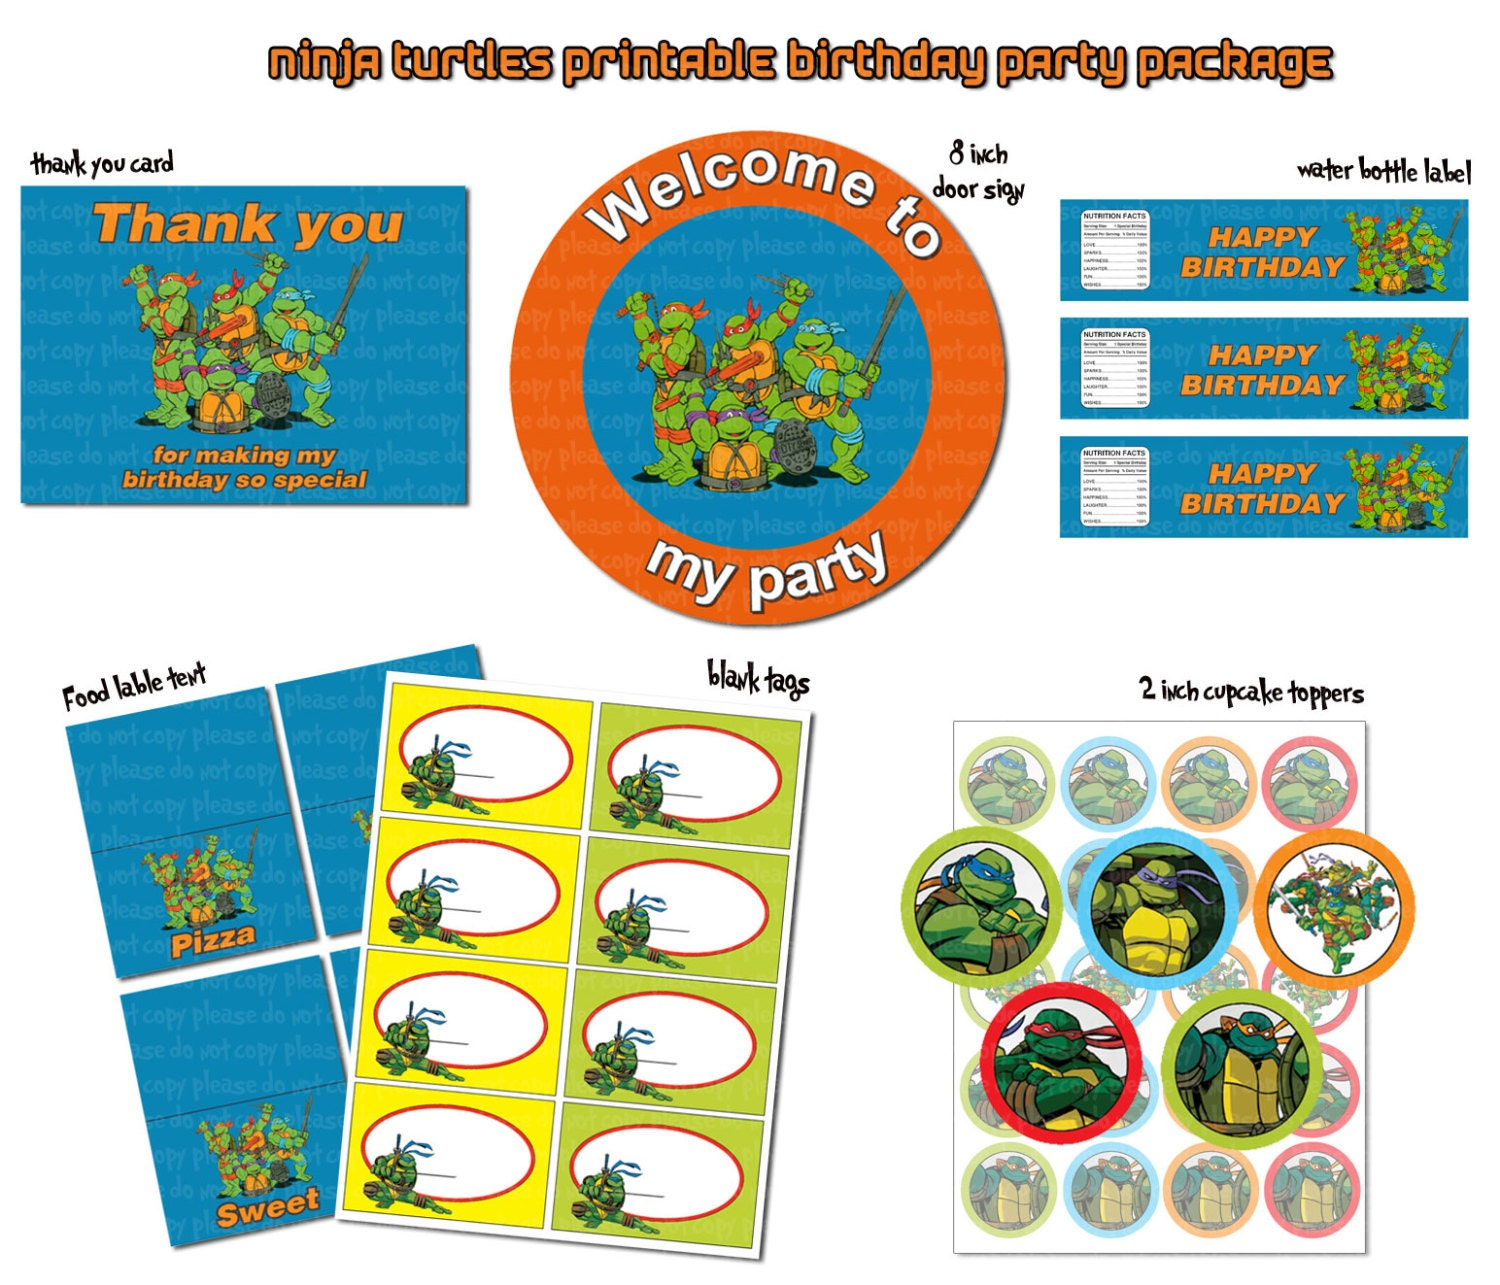 This is a photo of Epic Ninja Turtle Party Printables